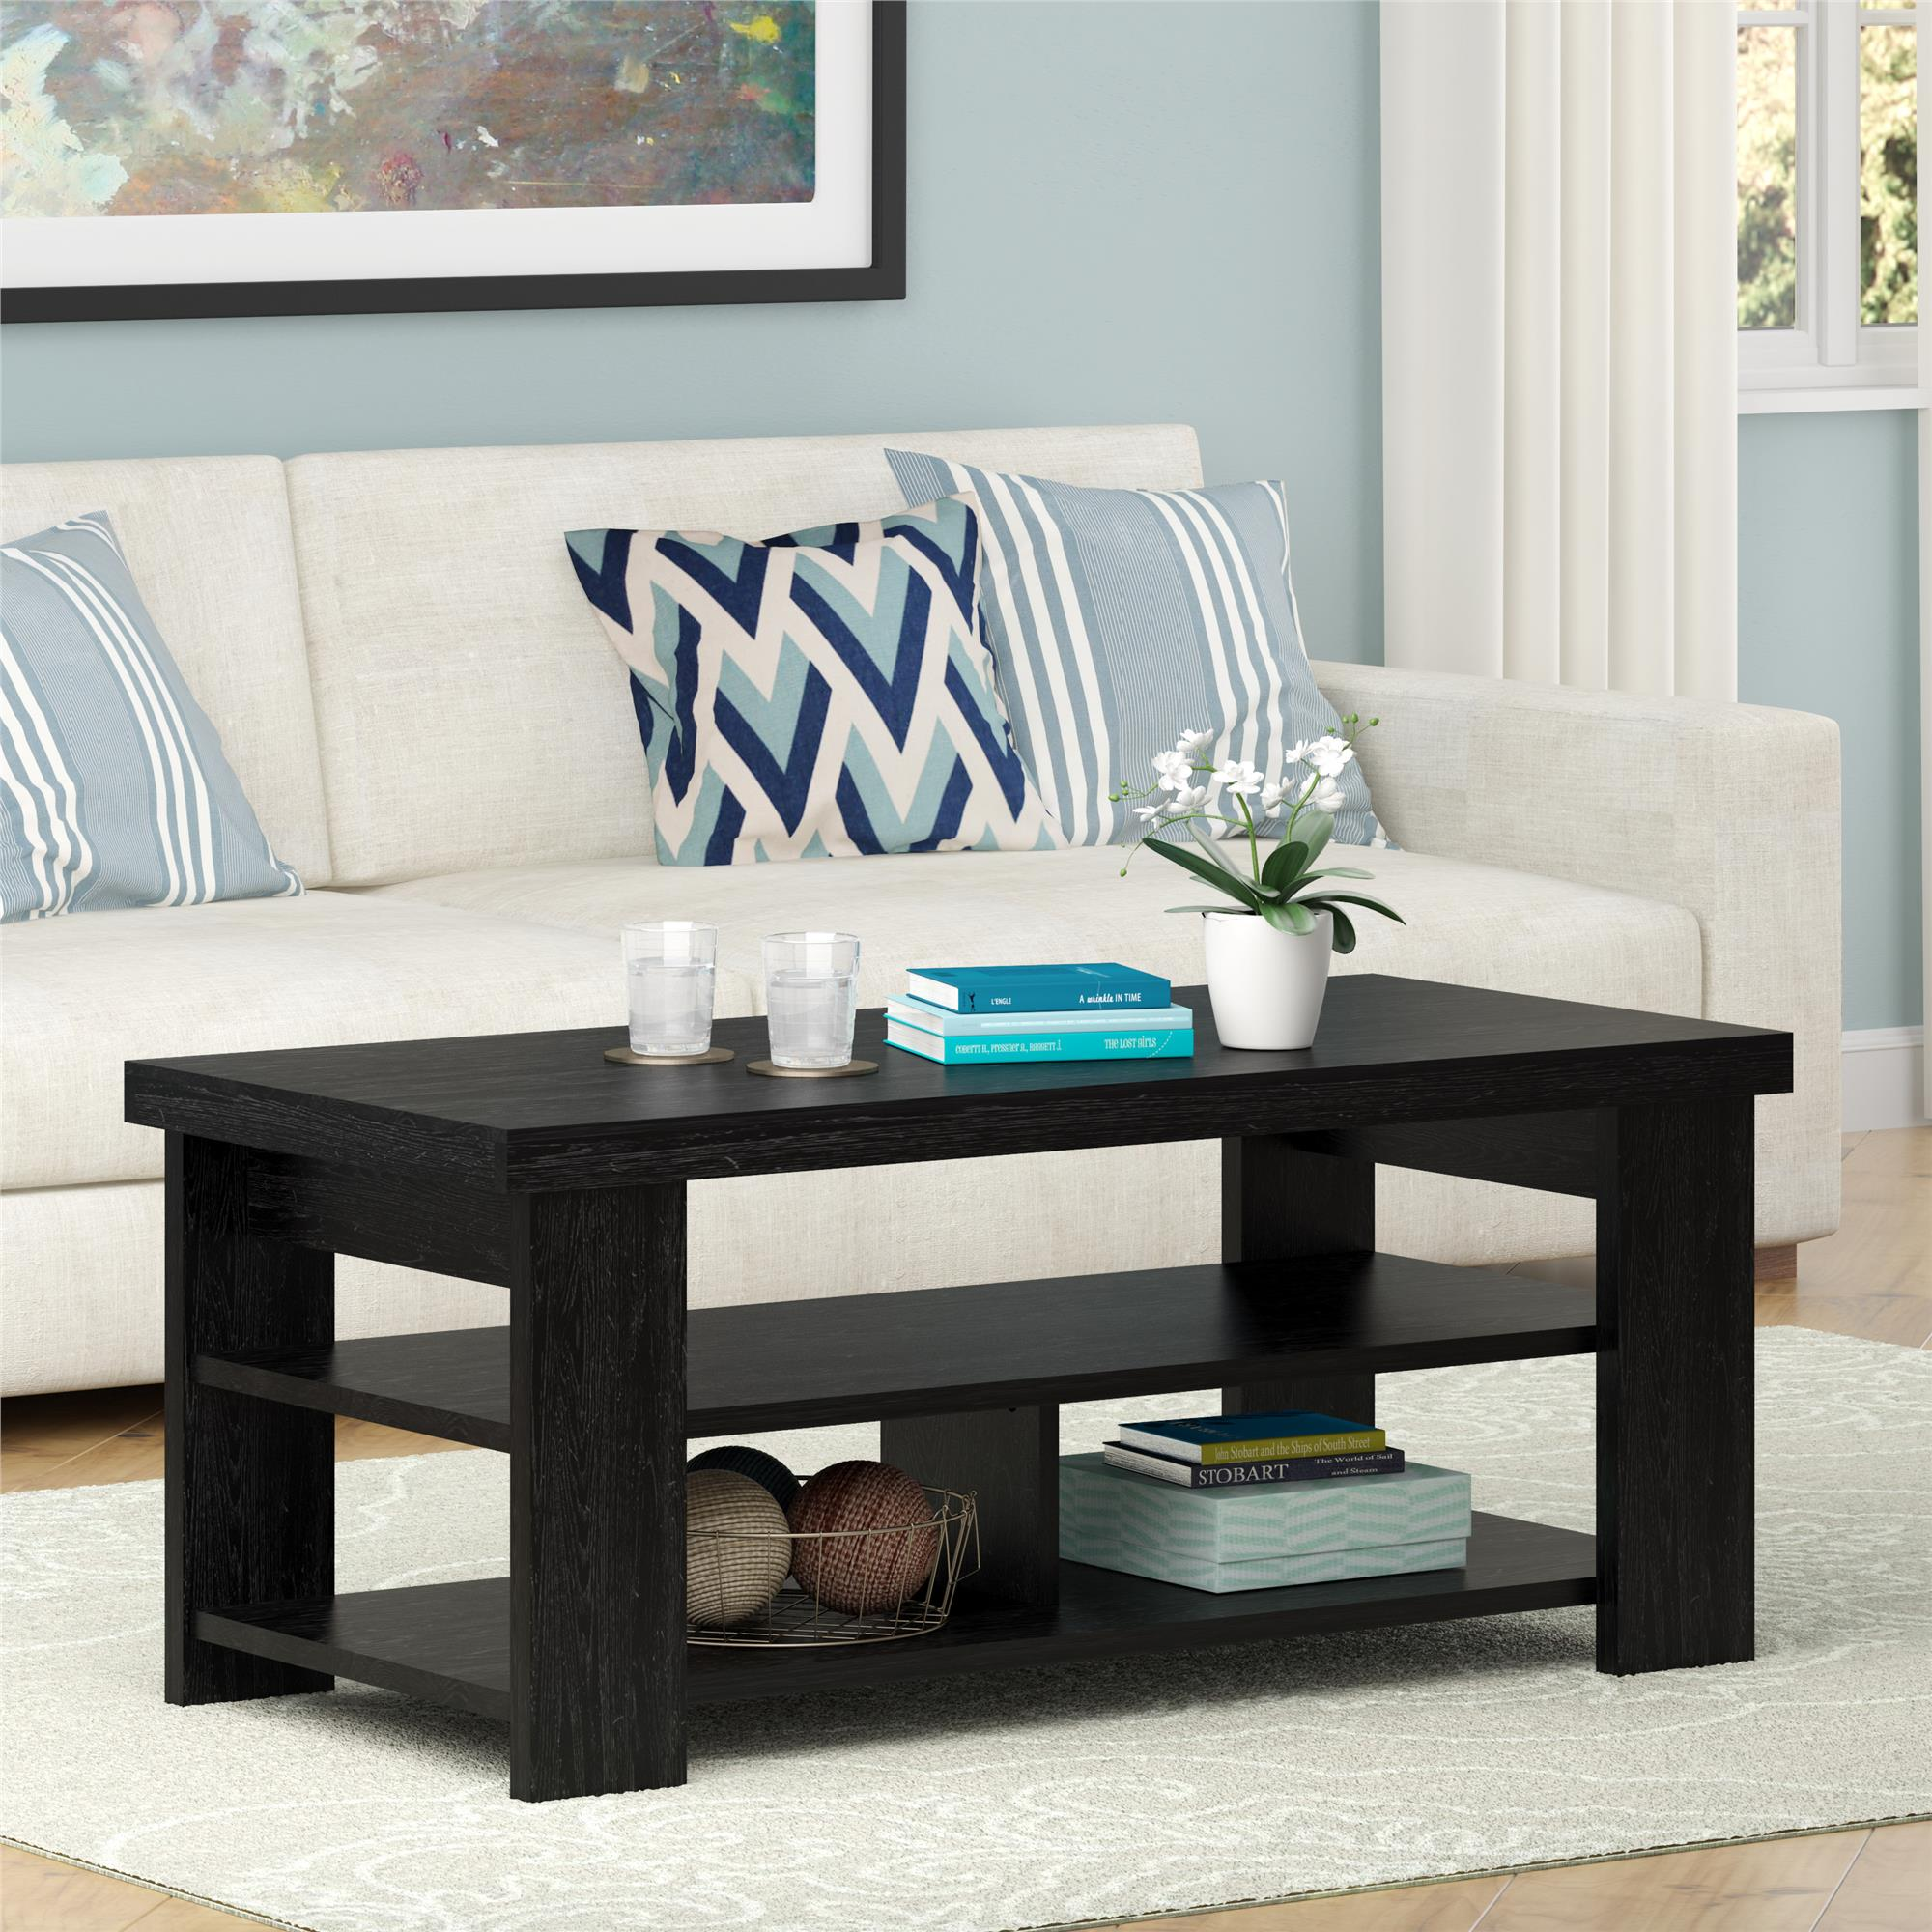 Ameriwood Home Jensen Coffee Table Multiple Colors Walmart